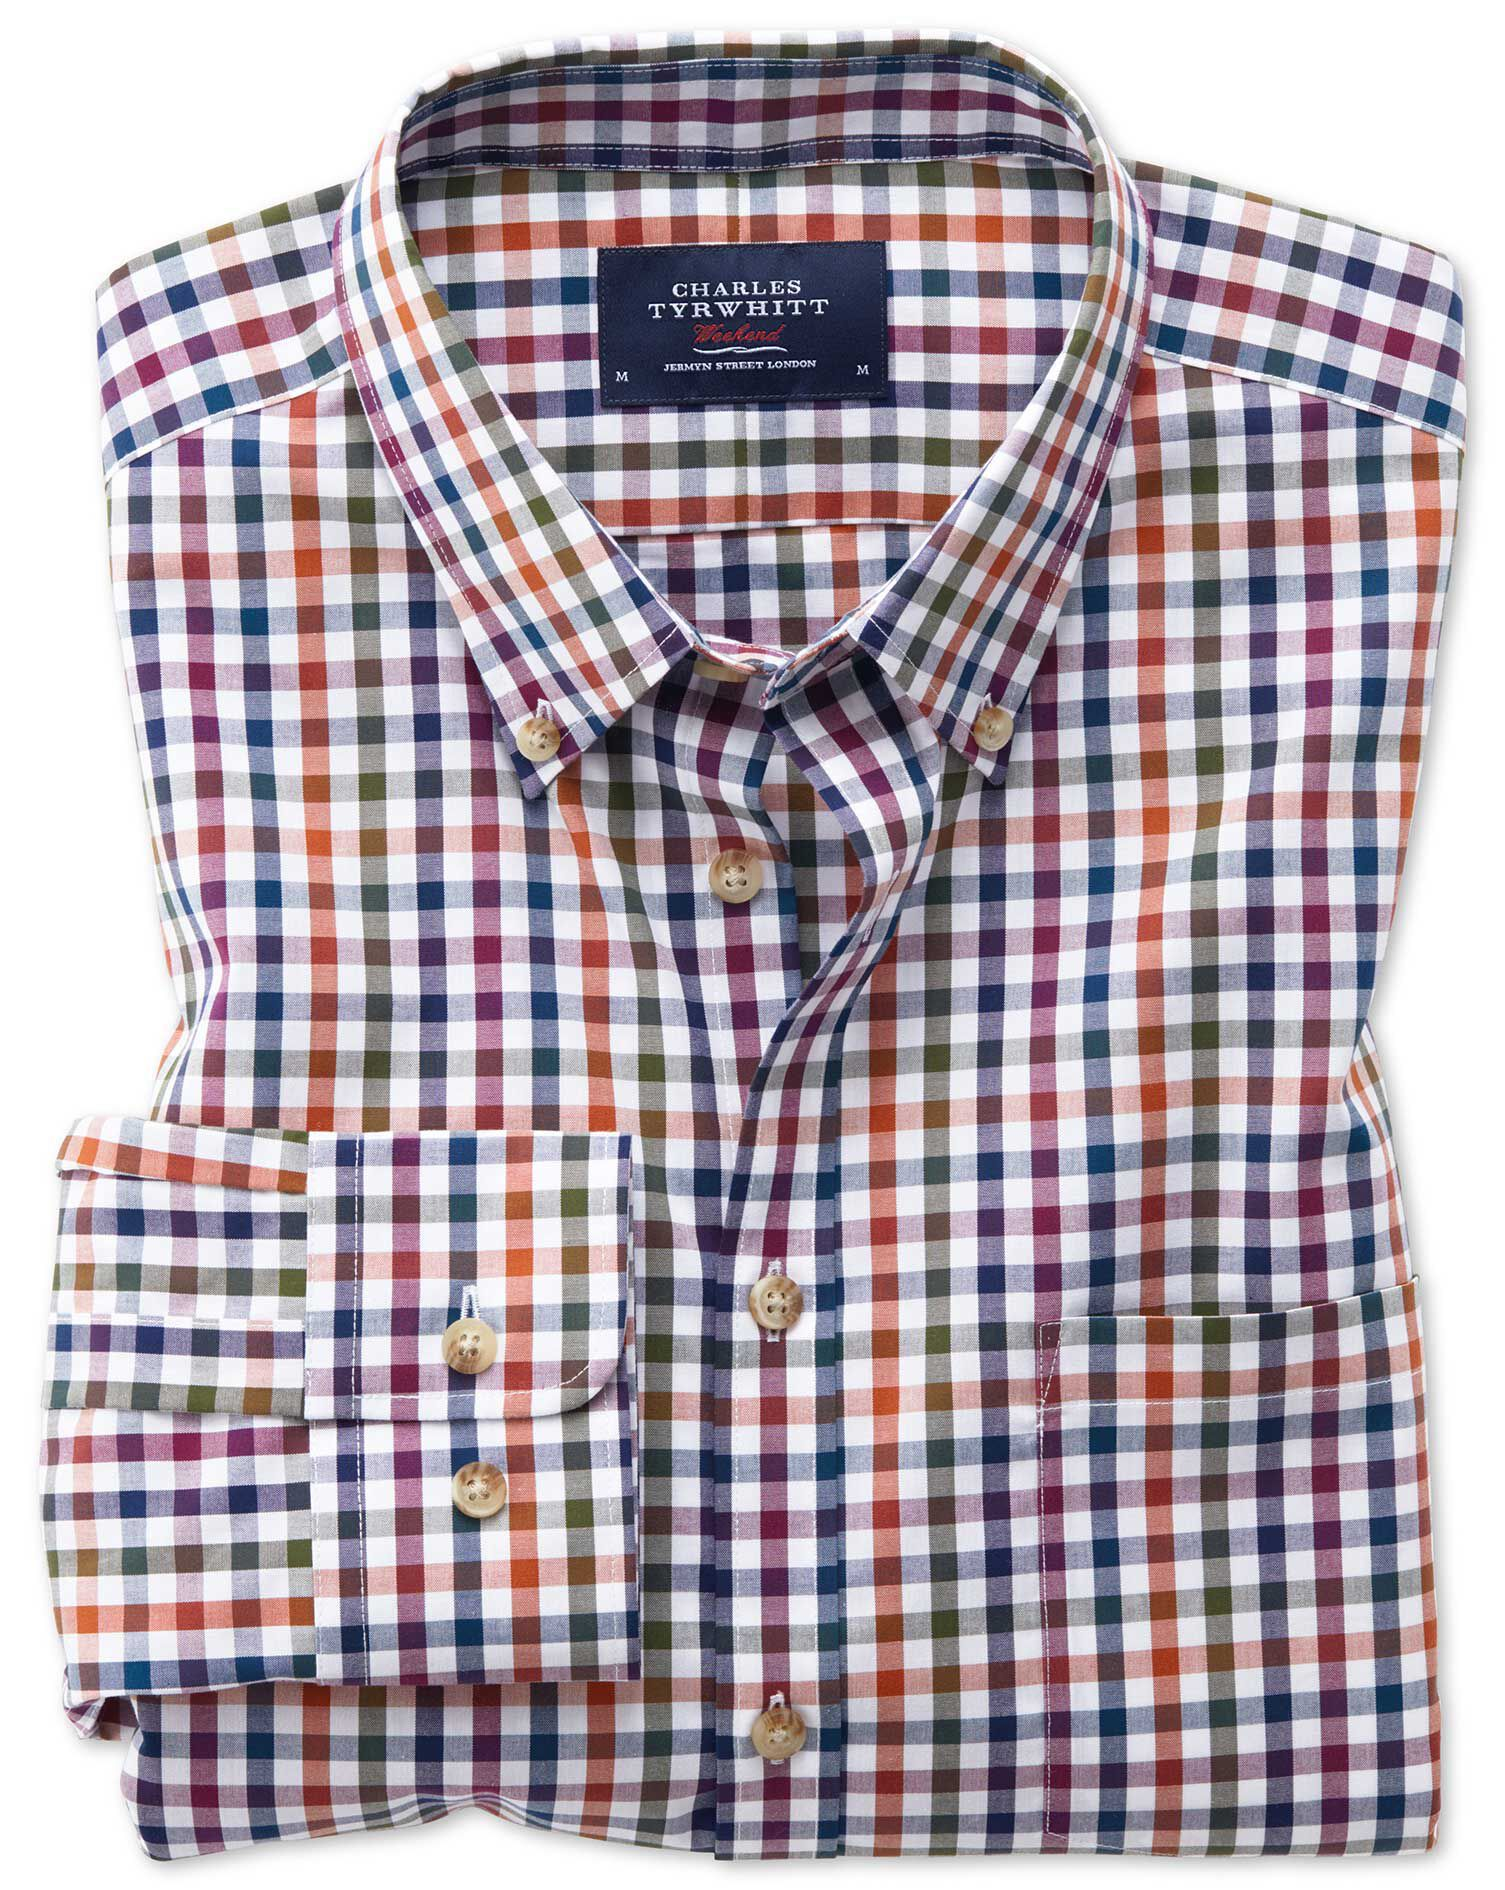 Classic Fit Button-Down Non-Iron Poplin Berry Multi Gingham Cotton Shirt Single Cuff Size XL by Char